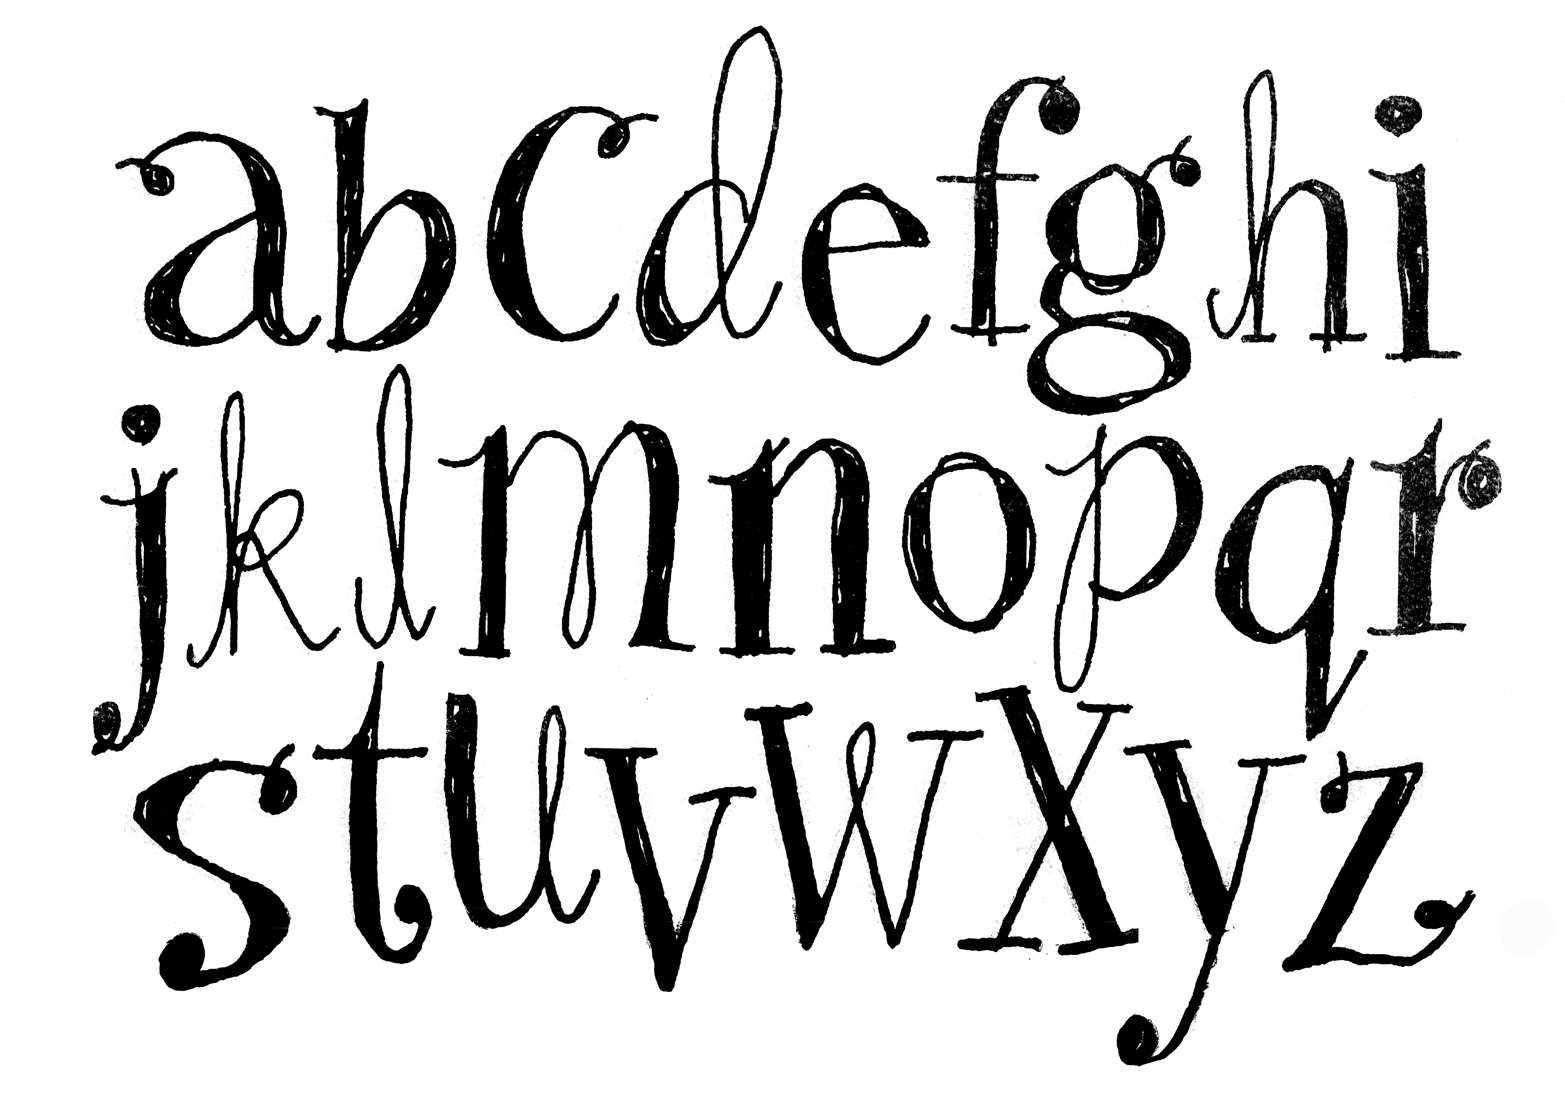 Alanna cavanagh new alphabet wallpaper designs for Flowy tattoo fonts